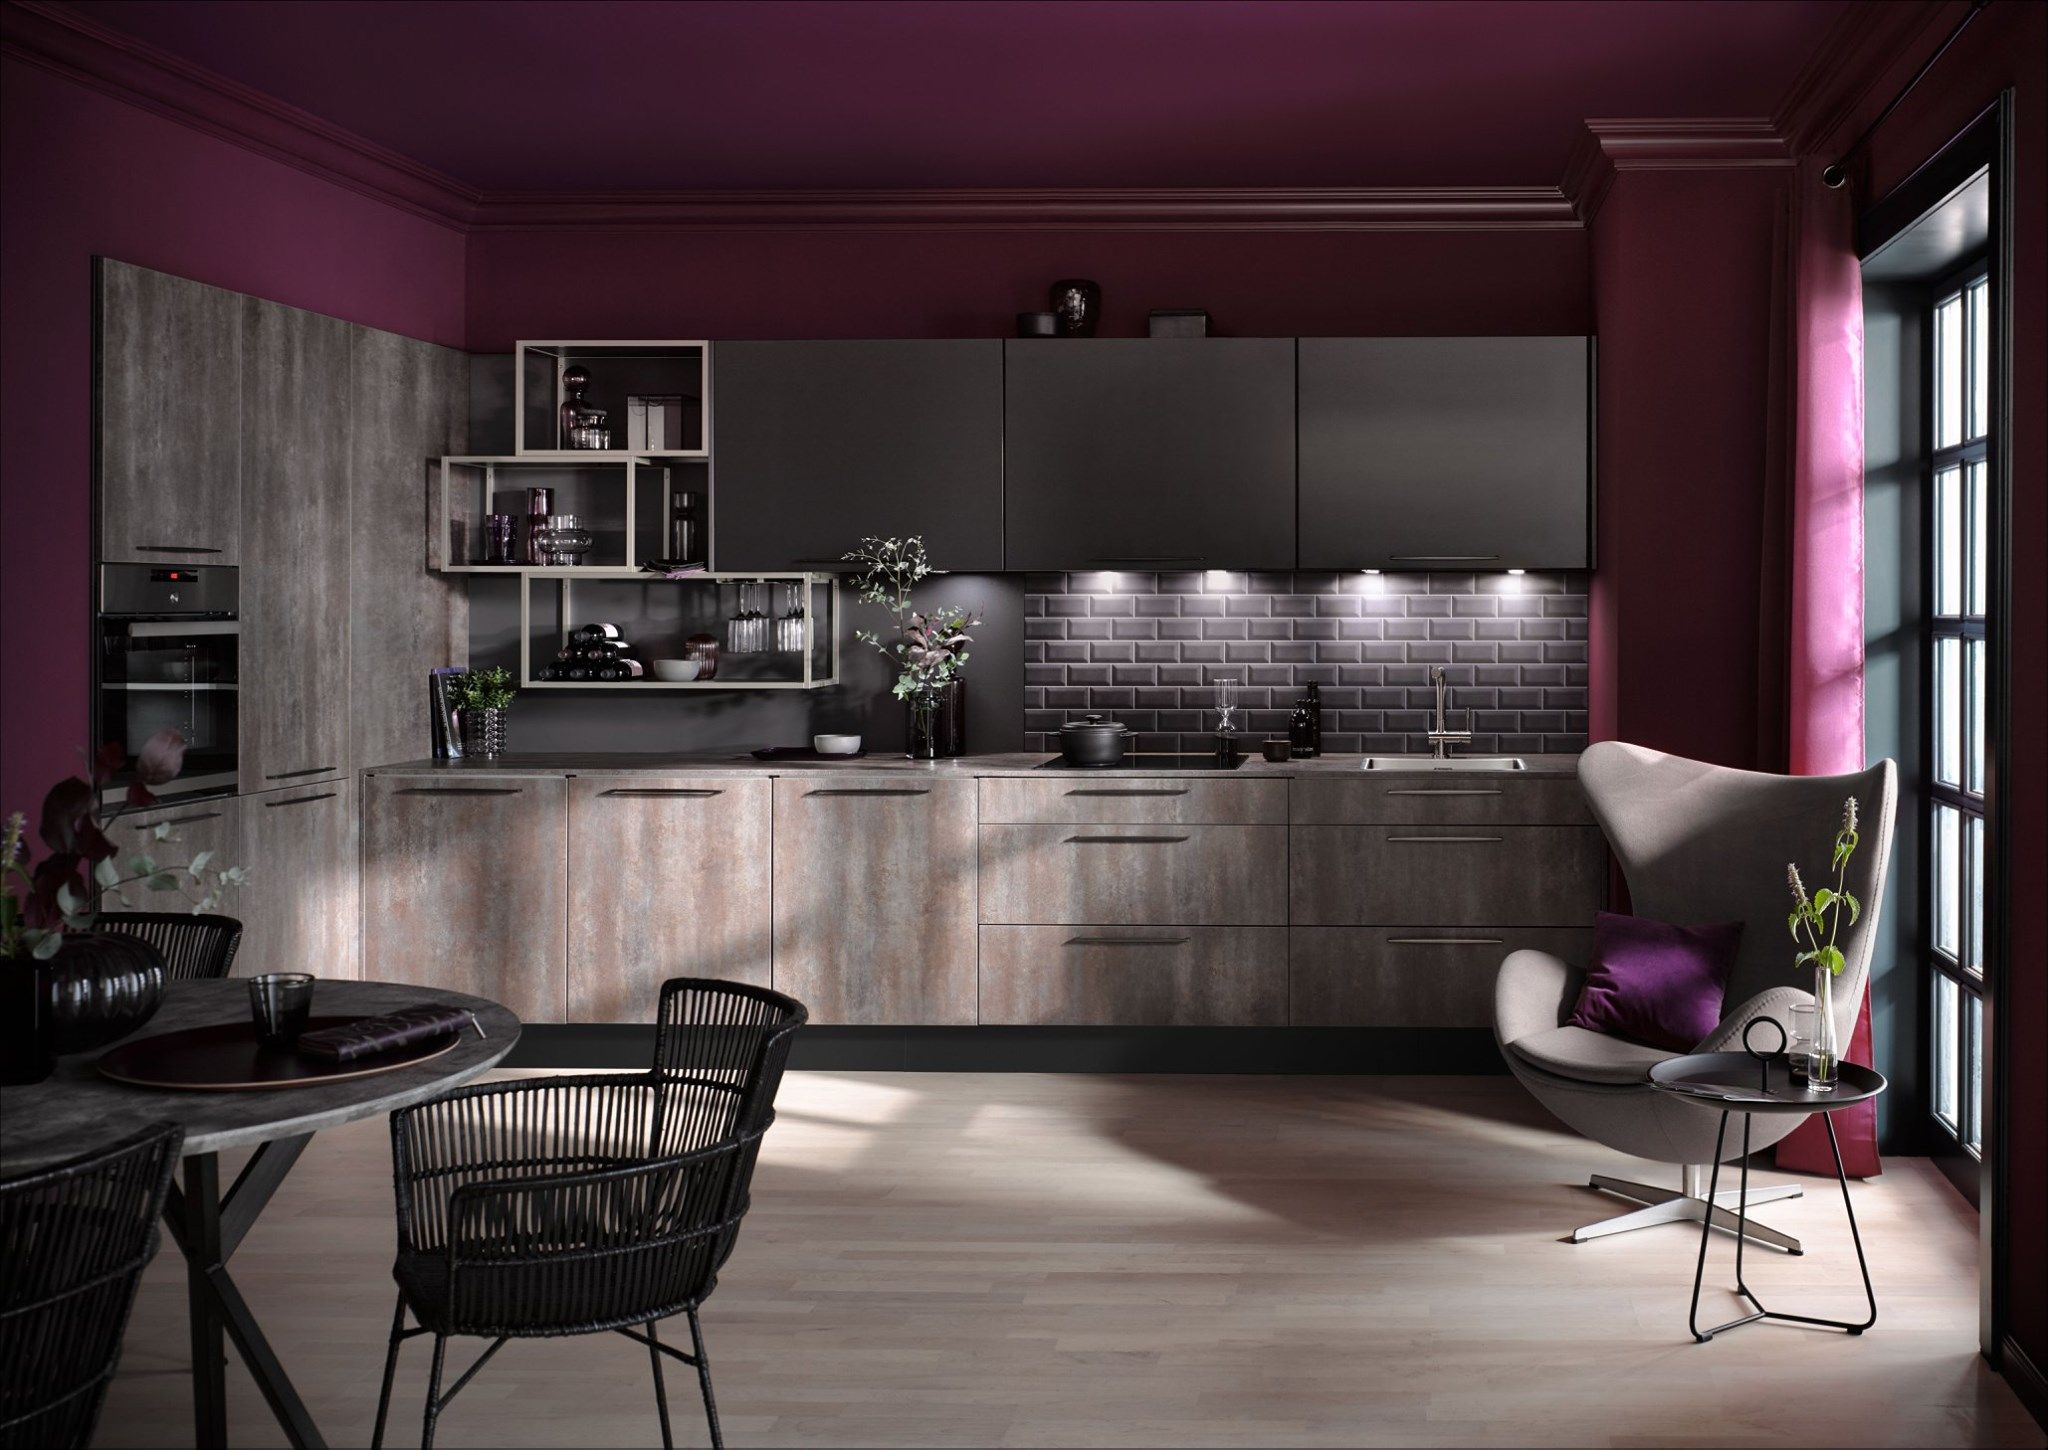 Imported Contemporary Modern Kitchen Dealers Coimbatore Contemporary Modern Kitchen Kitchen Design Trends Kitchen Color Trends